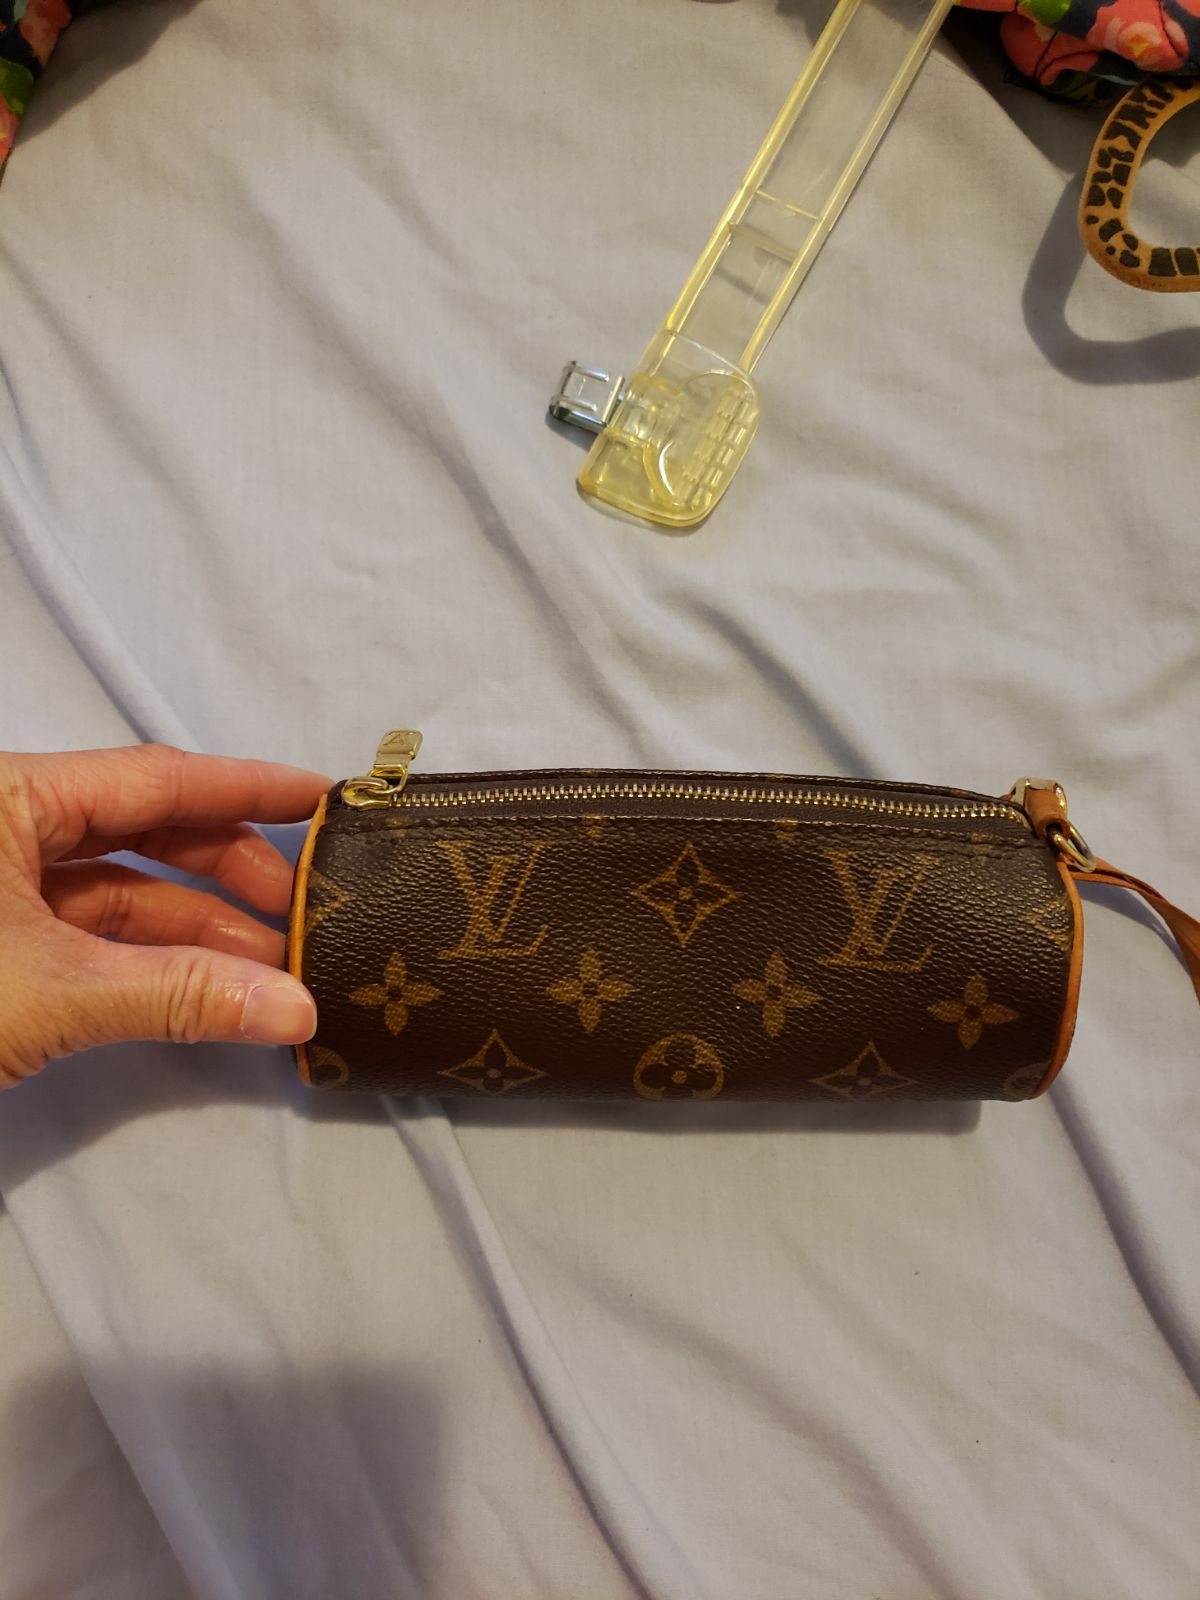 lv pouch